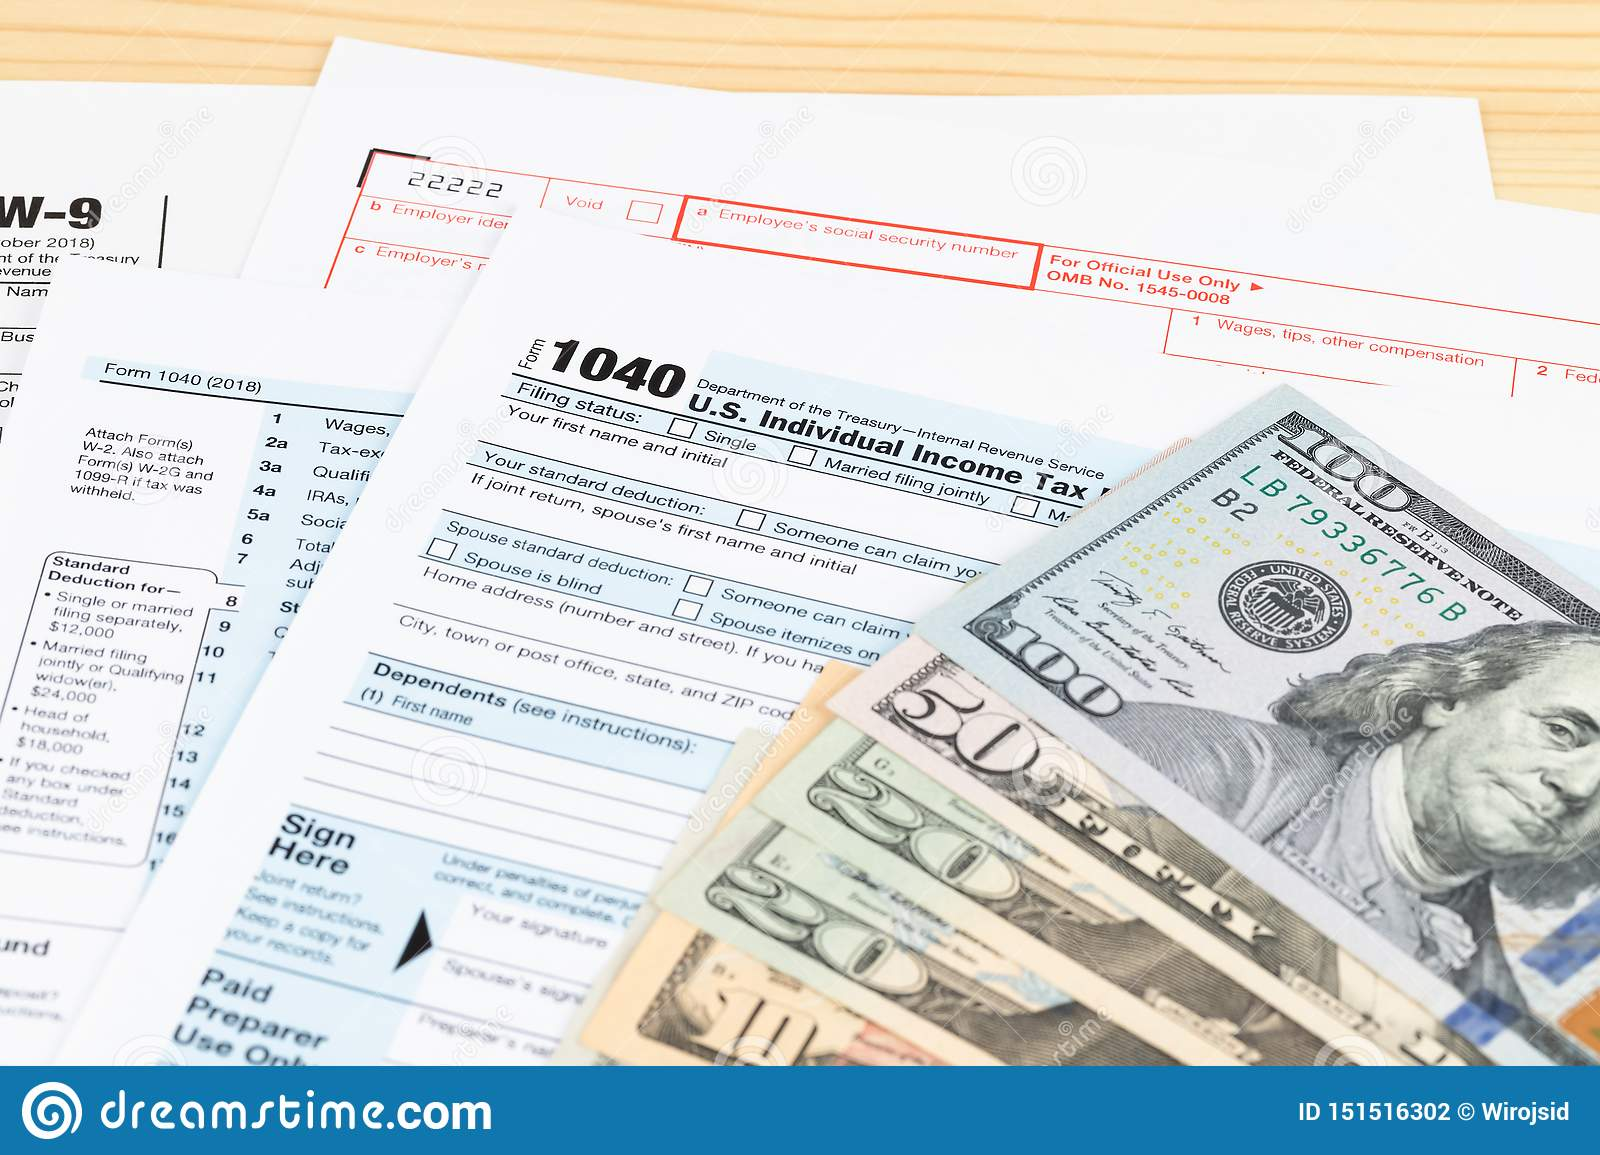 Individual income tax return form by IRS, concept for taxation